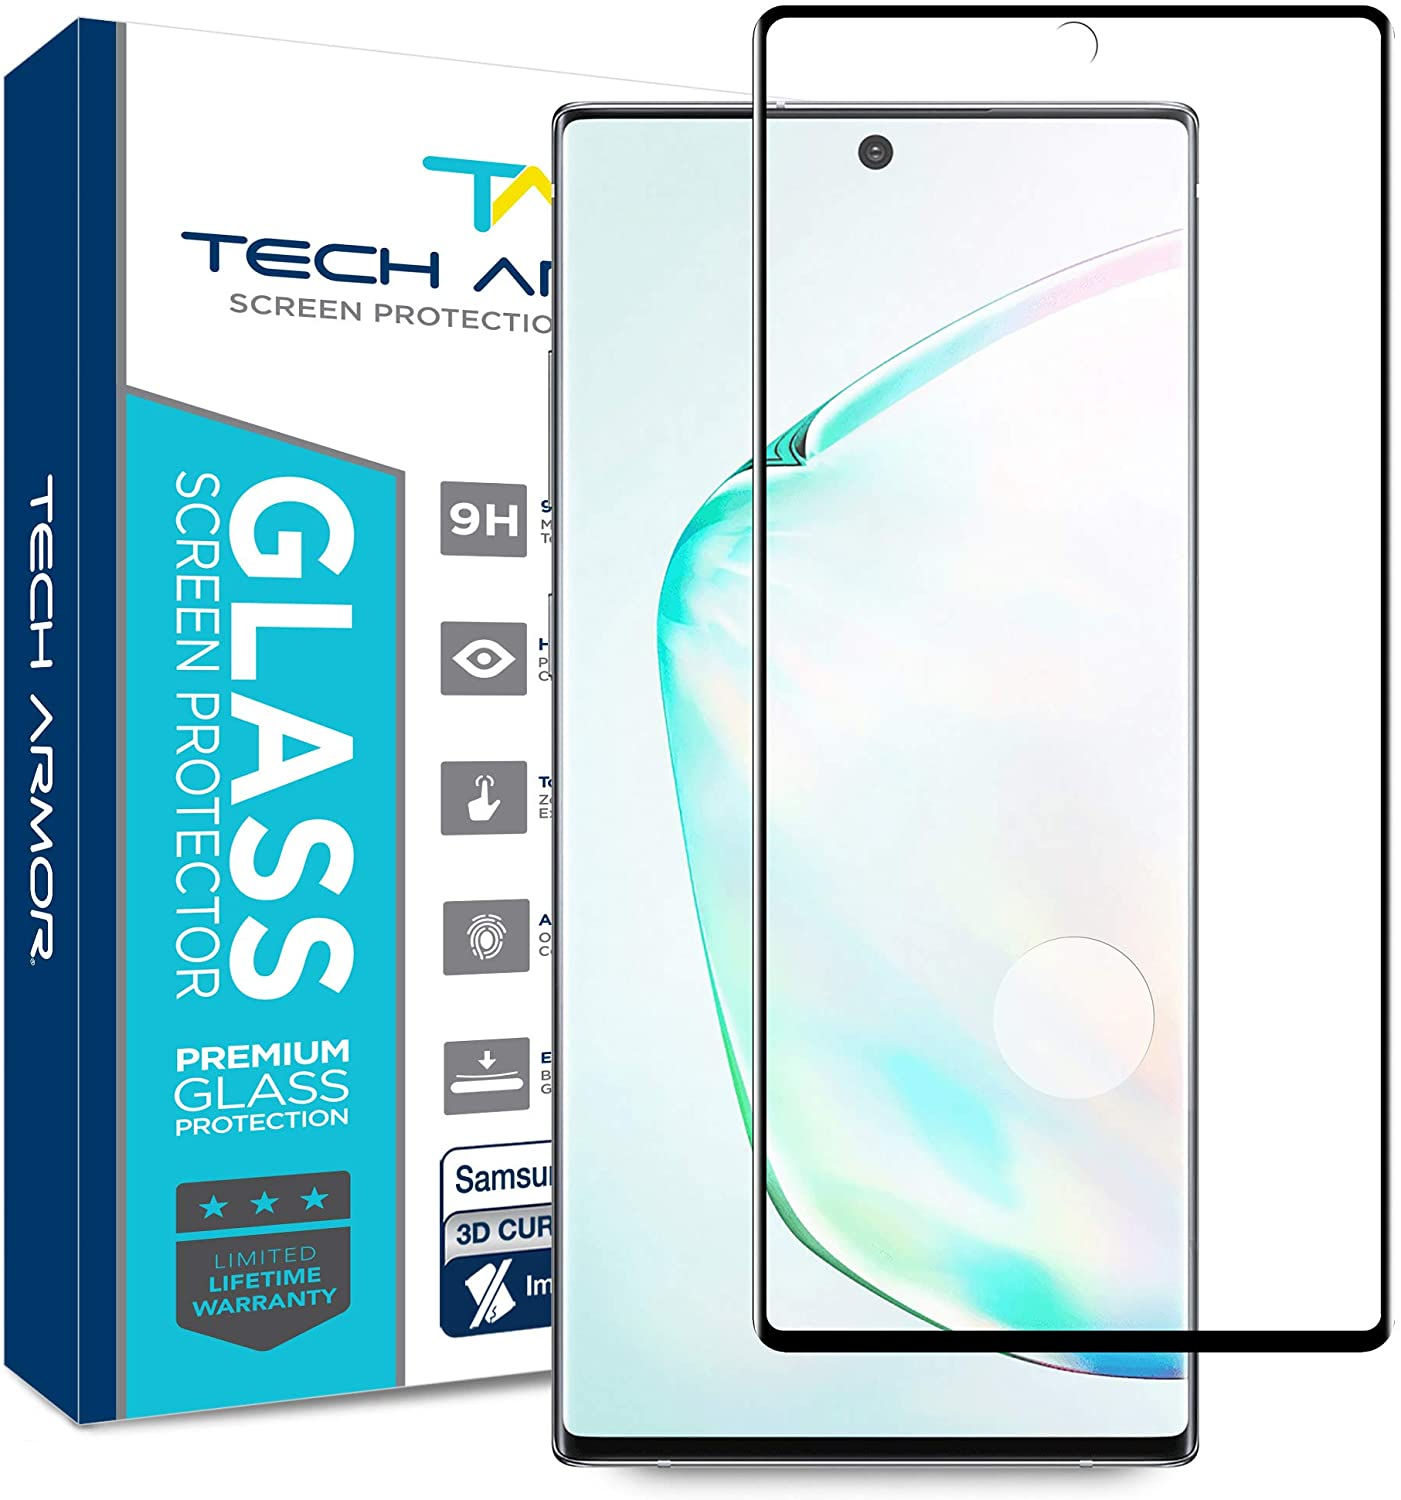 Tech Armor 3D Curved Ballistic Glass Screen Protector for Samsung Galaxy Note 10 Plus, CASE-Friendly, Scraping Card Included (Black) [1-Pack]